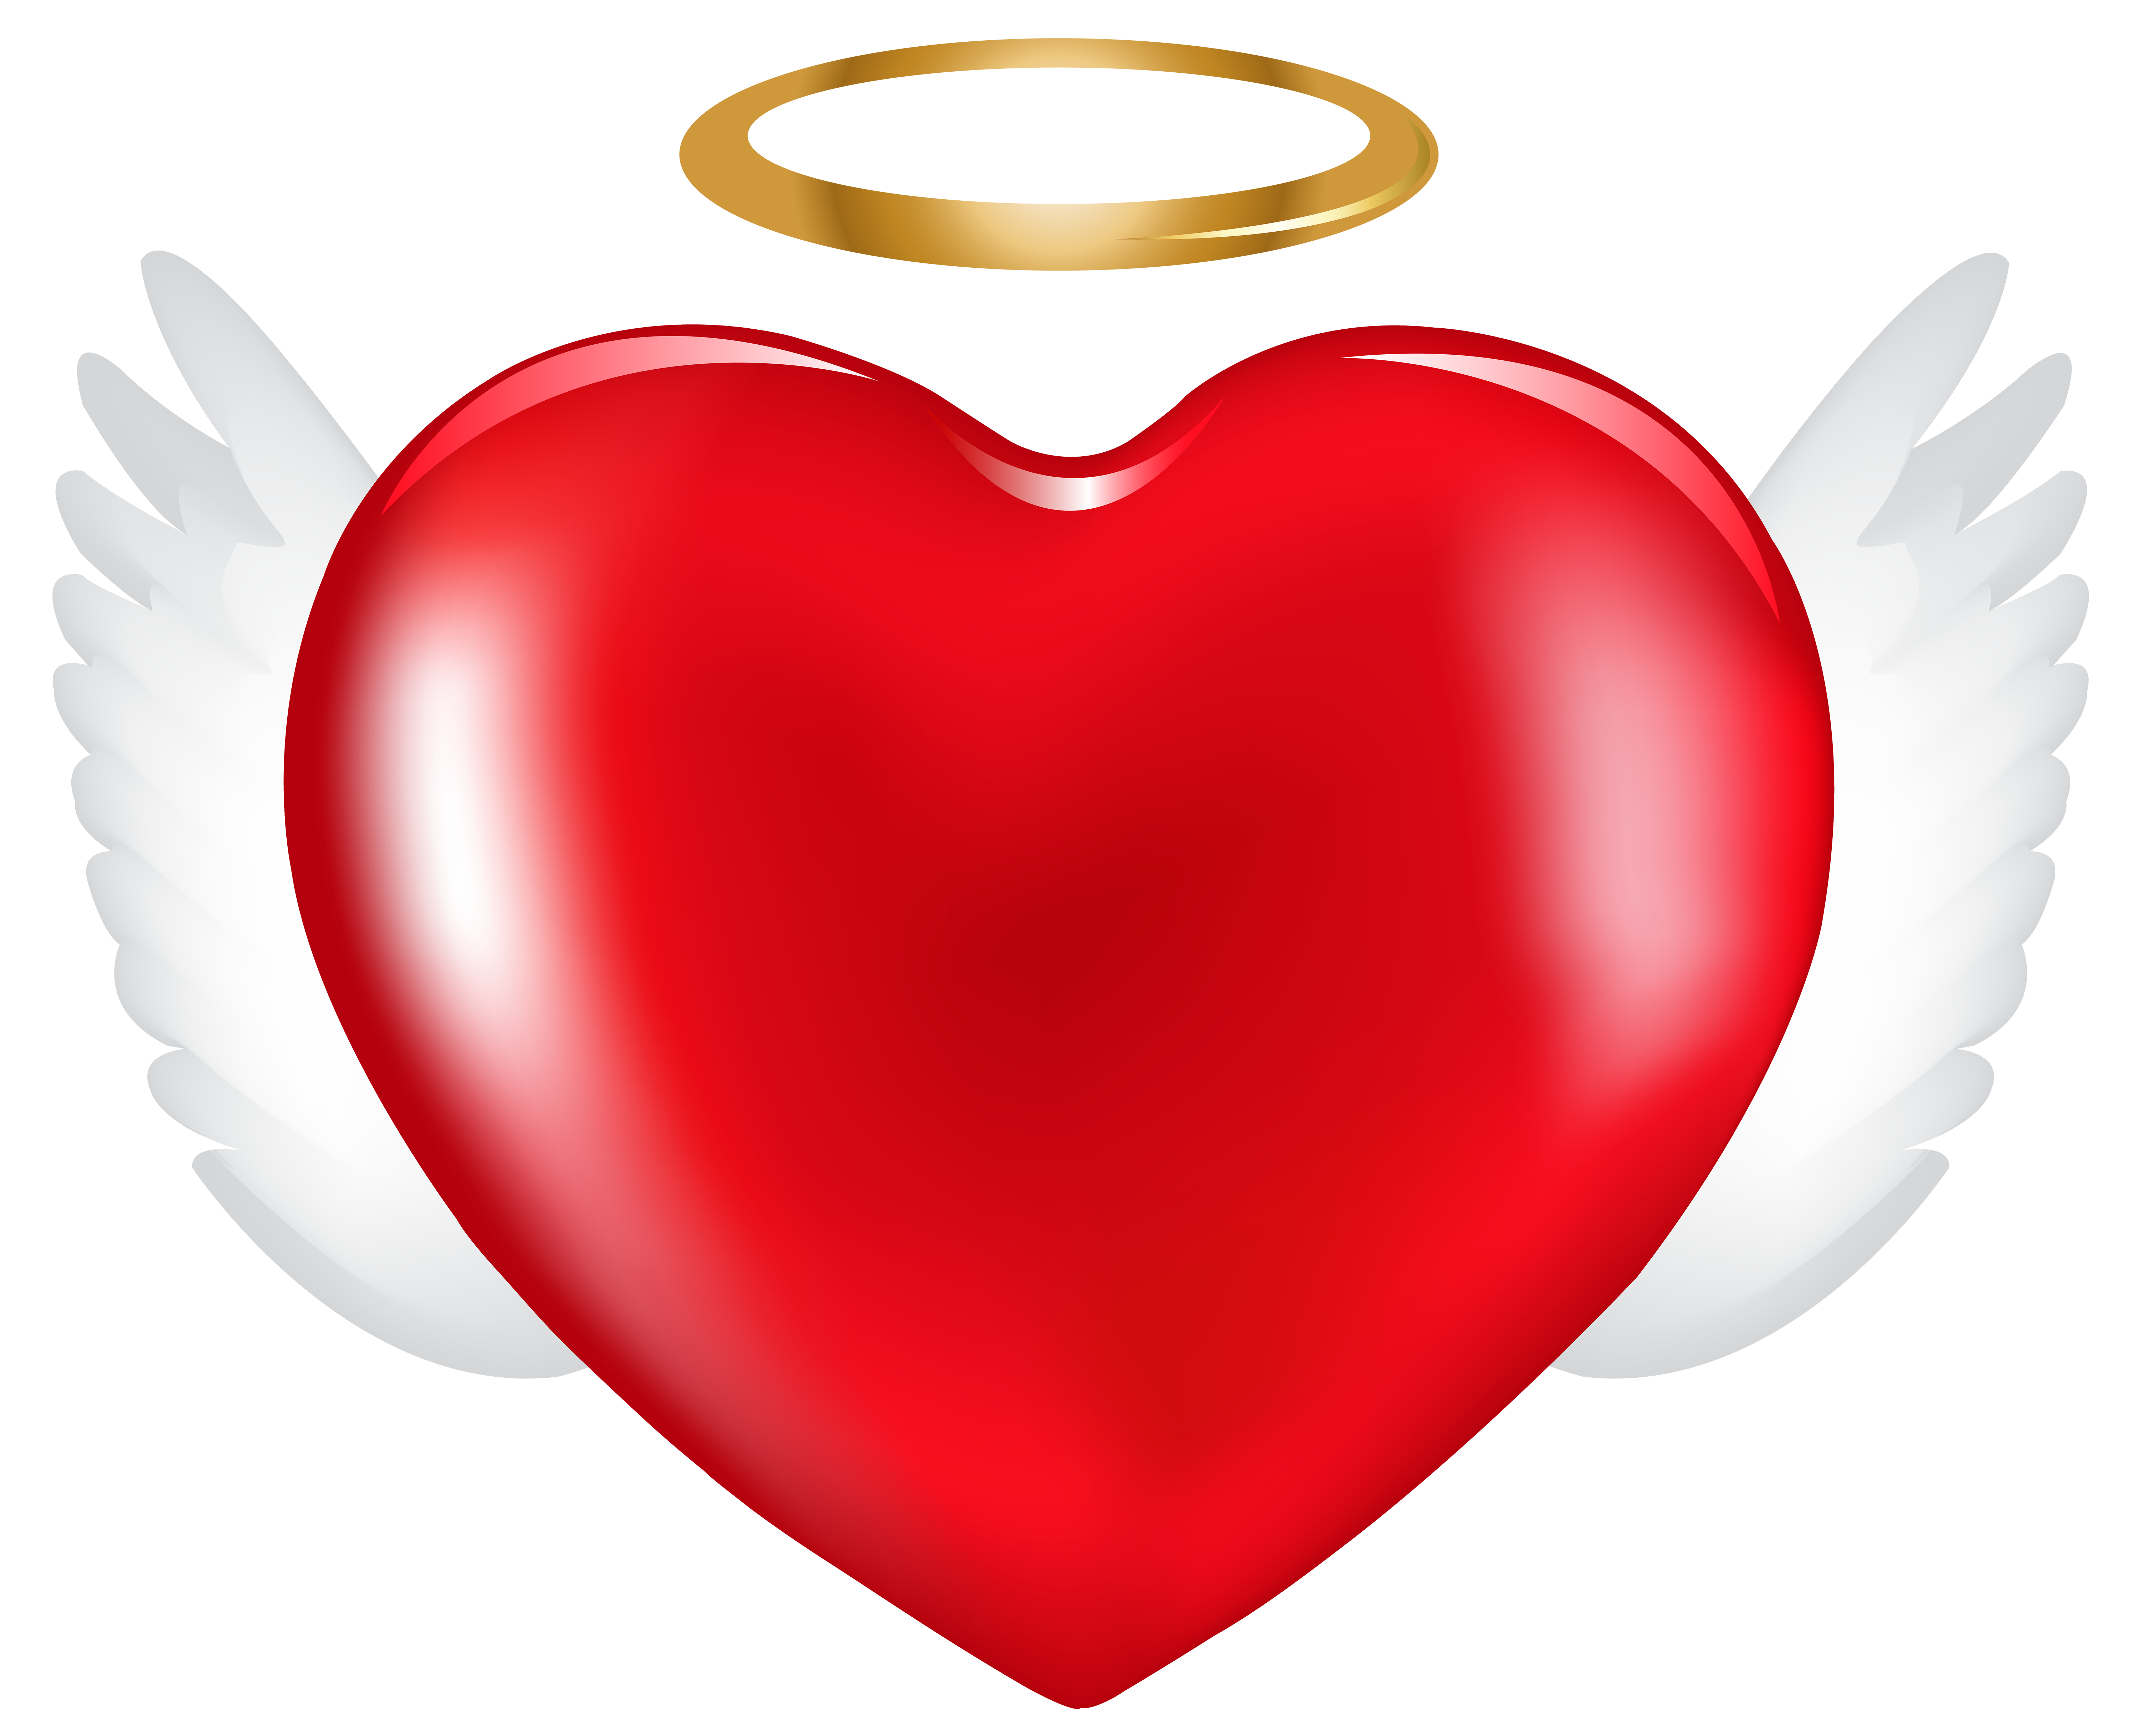 vector black and white stock Png clip art image. Angel clipart heart.